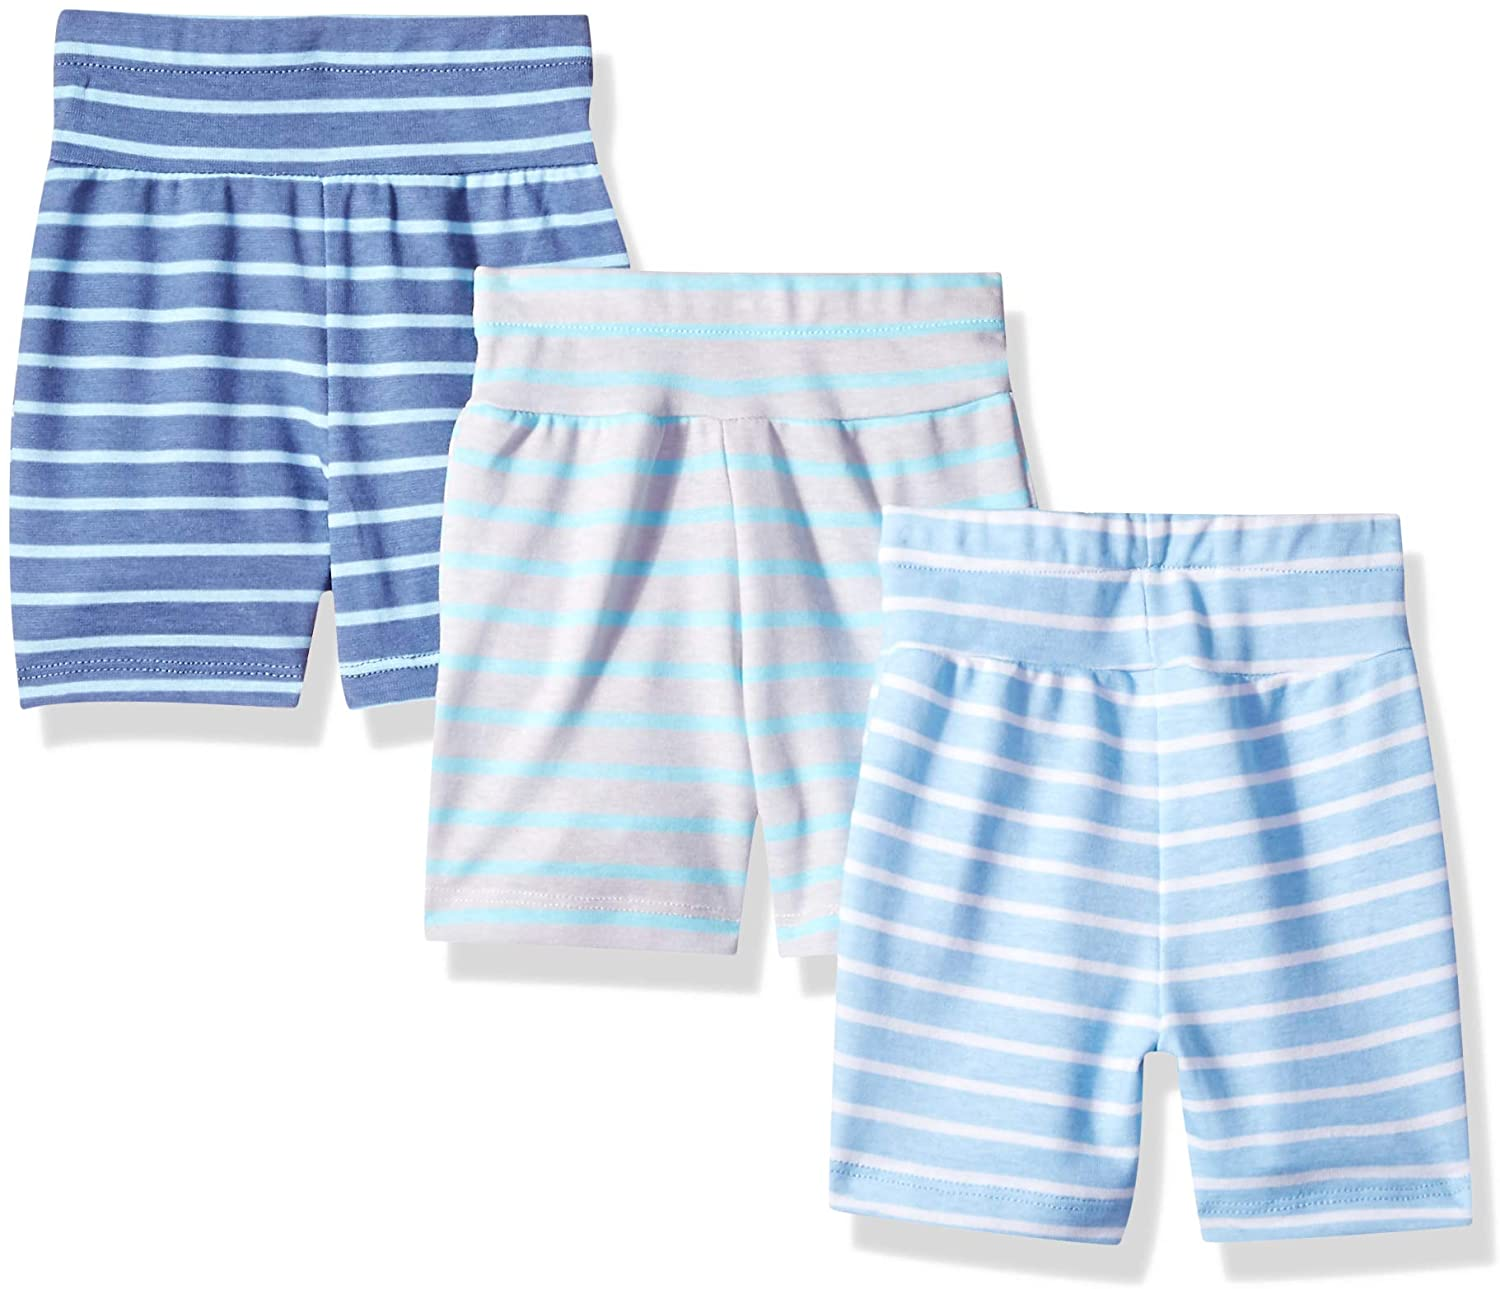 Hanes Ultimate Baby Flexy 3 Pack Adjustable Fit Knit Shorts: Clothing